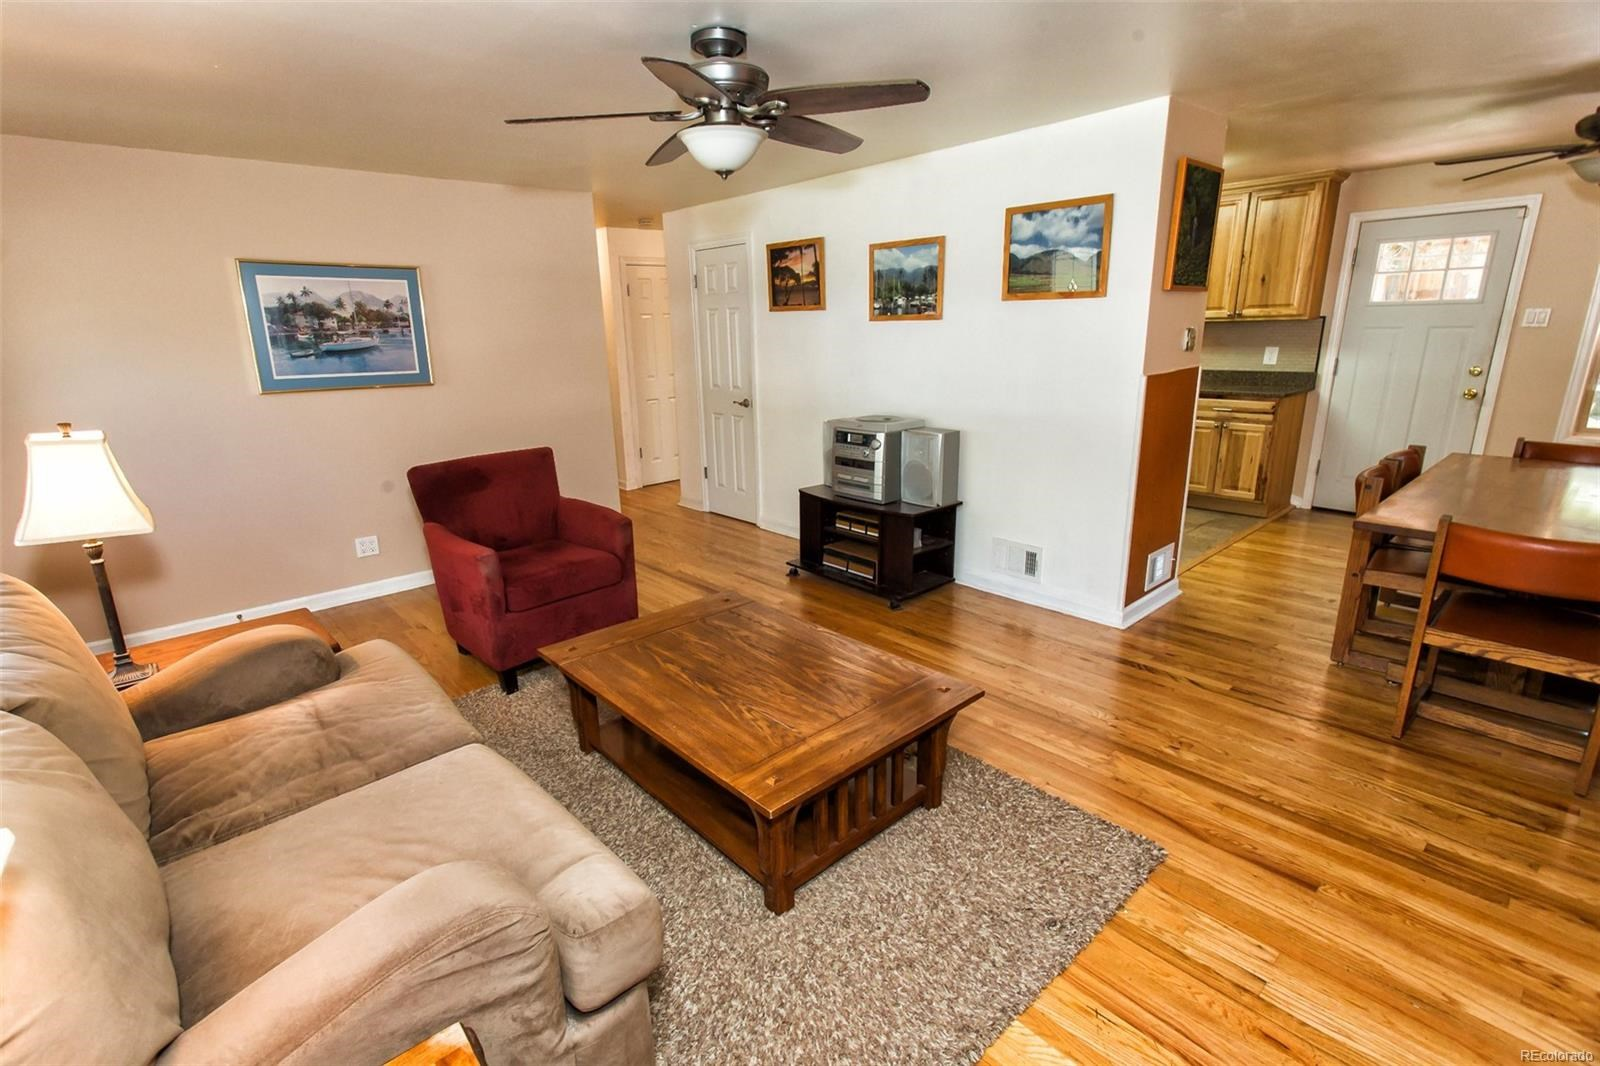 MLS# 1591889 - 7 - 10120 W 8th Place, Lakewood, CO 80215